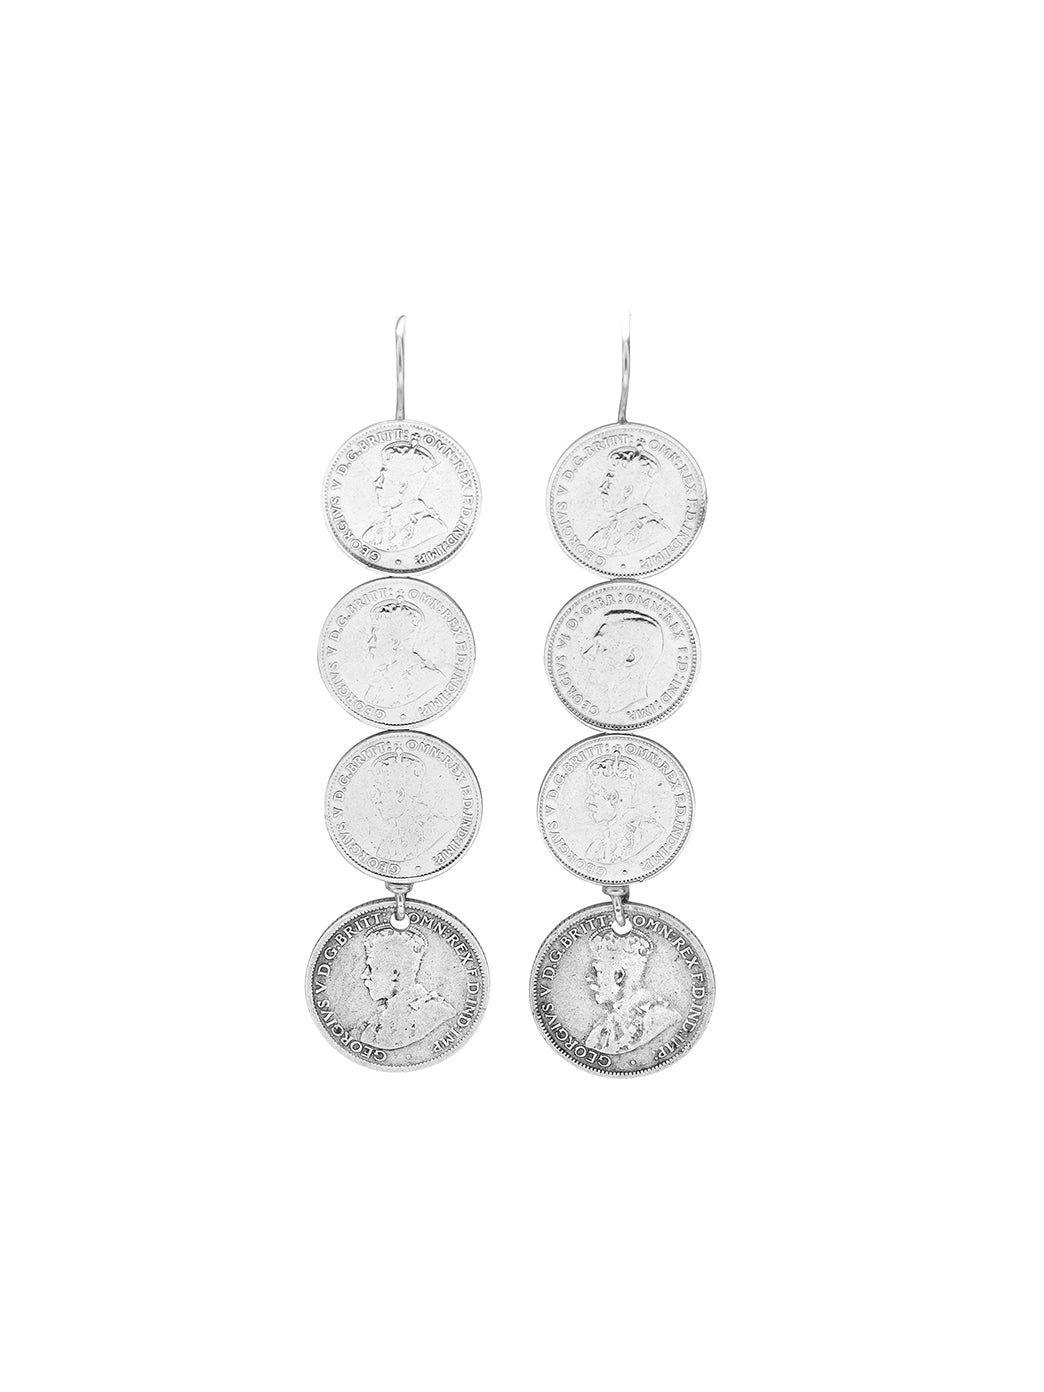 Fiorina Jewellery Andes Earrings 6P Coin